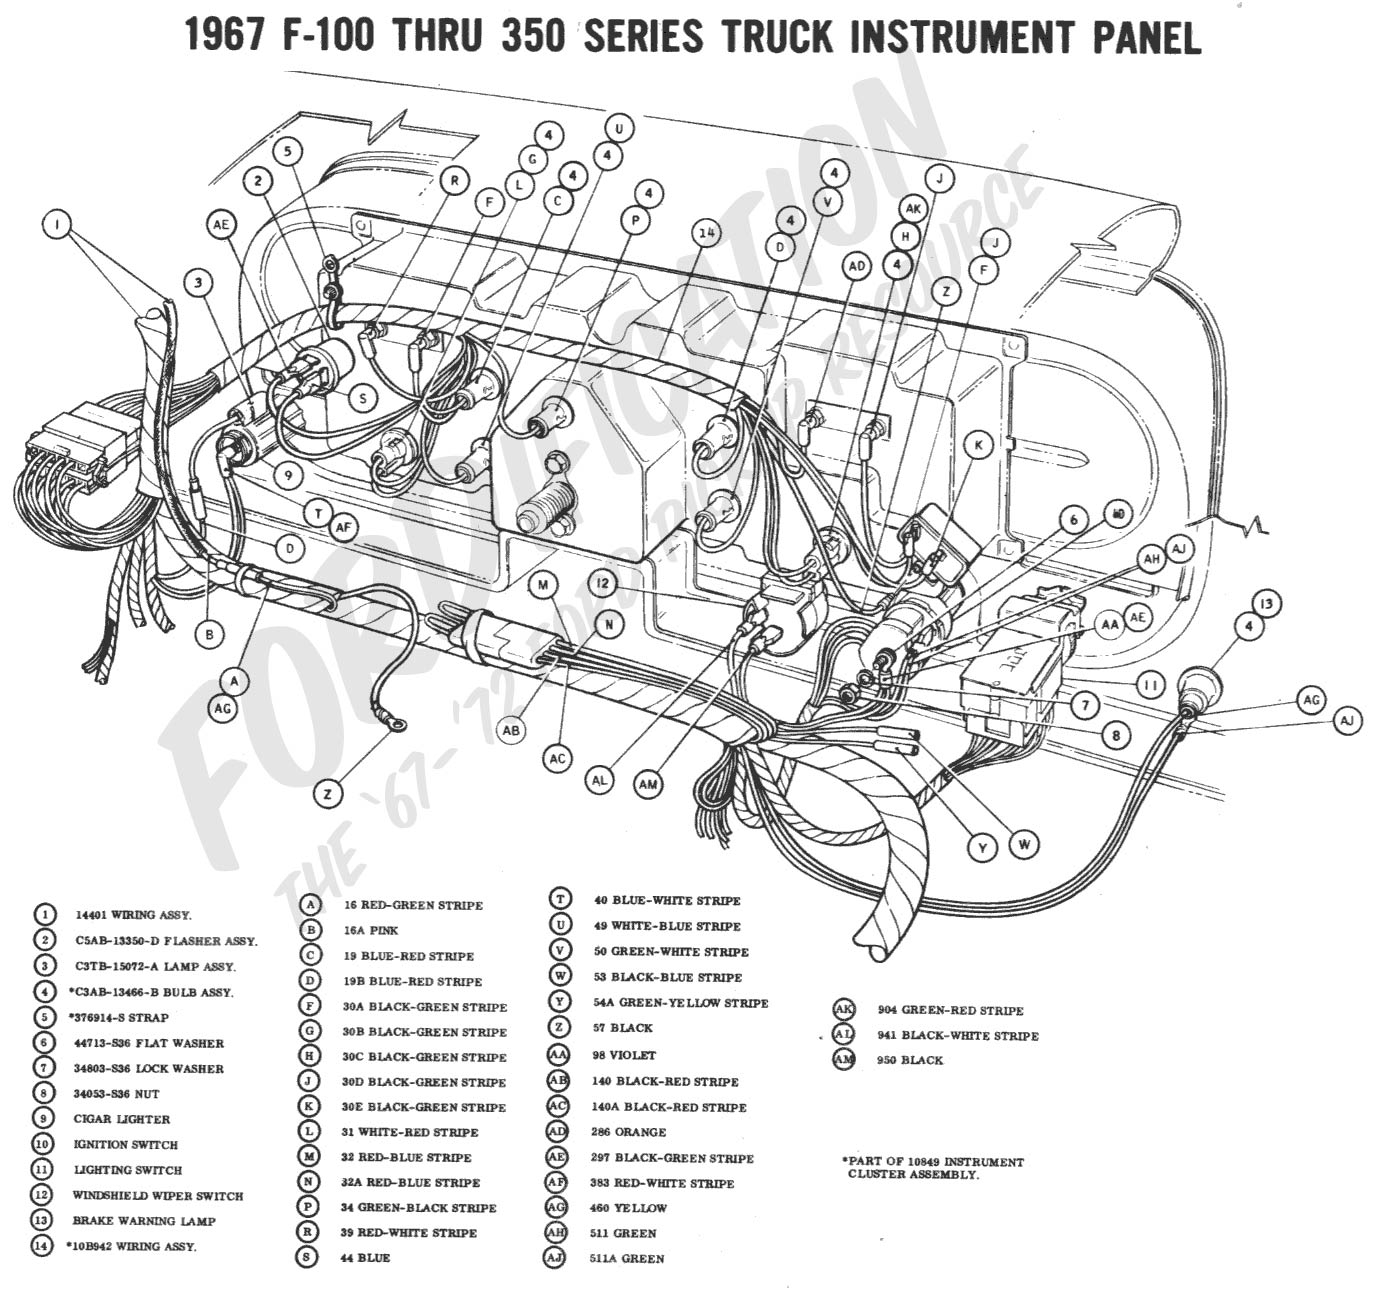 wiring 1967instrumentpanel ford truck technical drawings and schematics section h wiring Ford 4600 Wiring Schematic at fashall.co